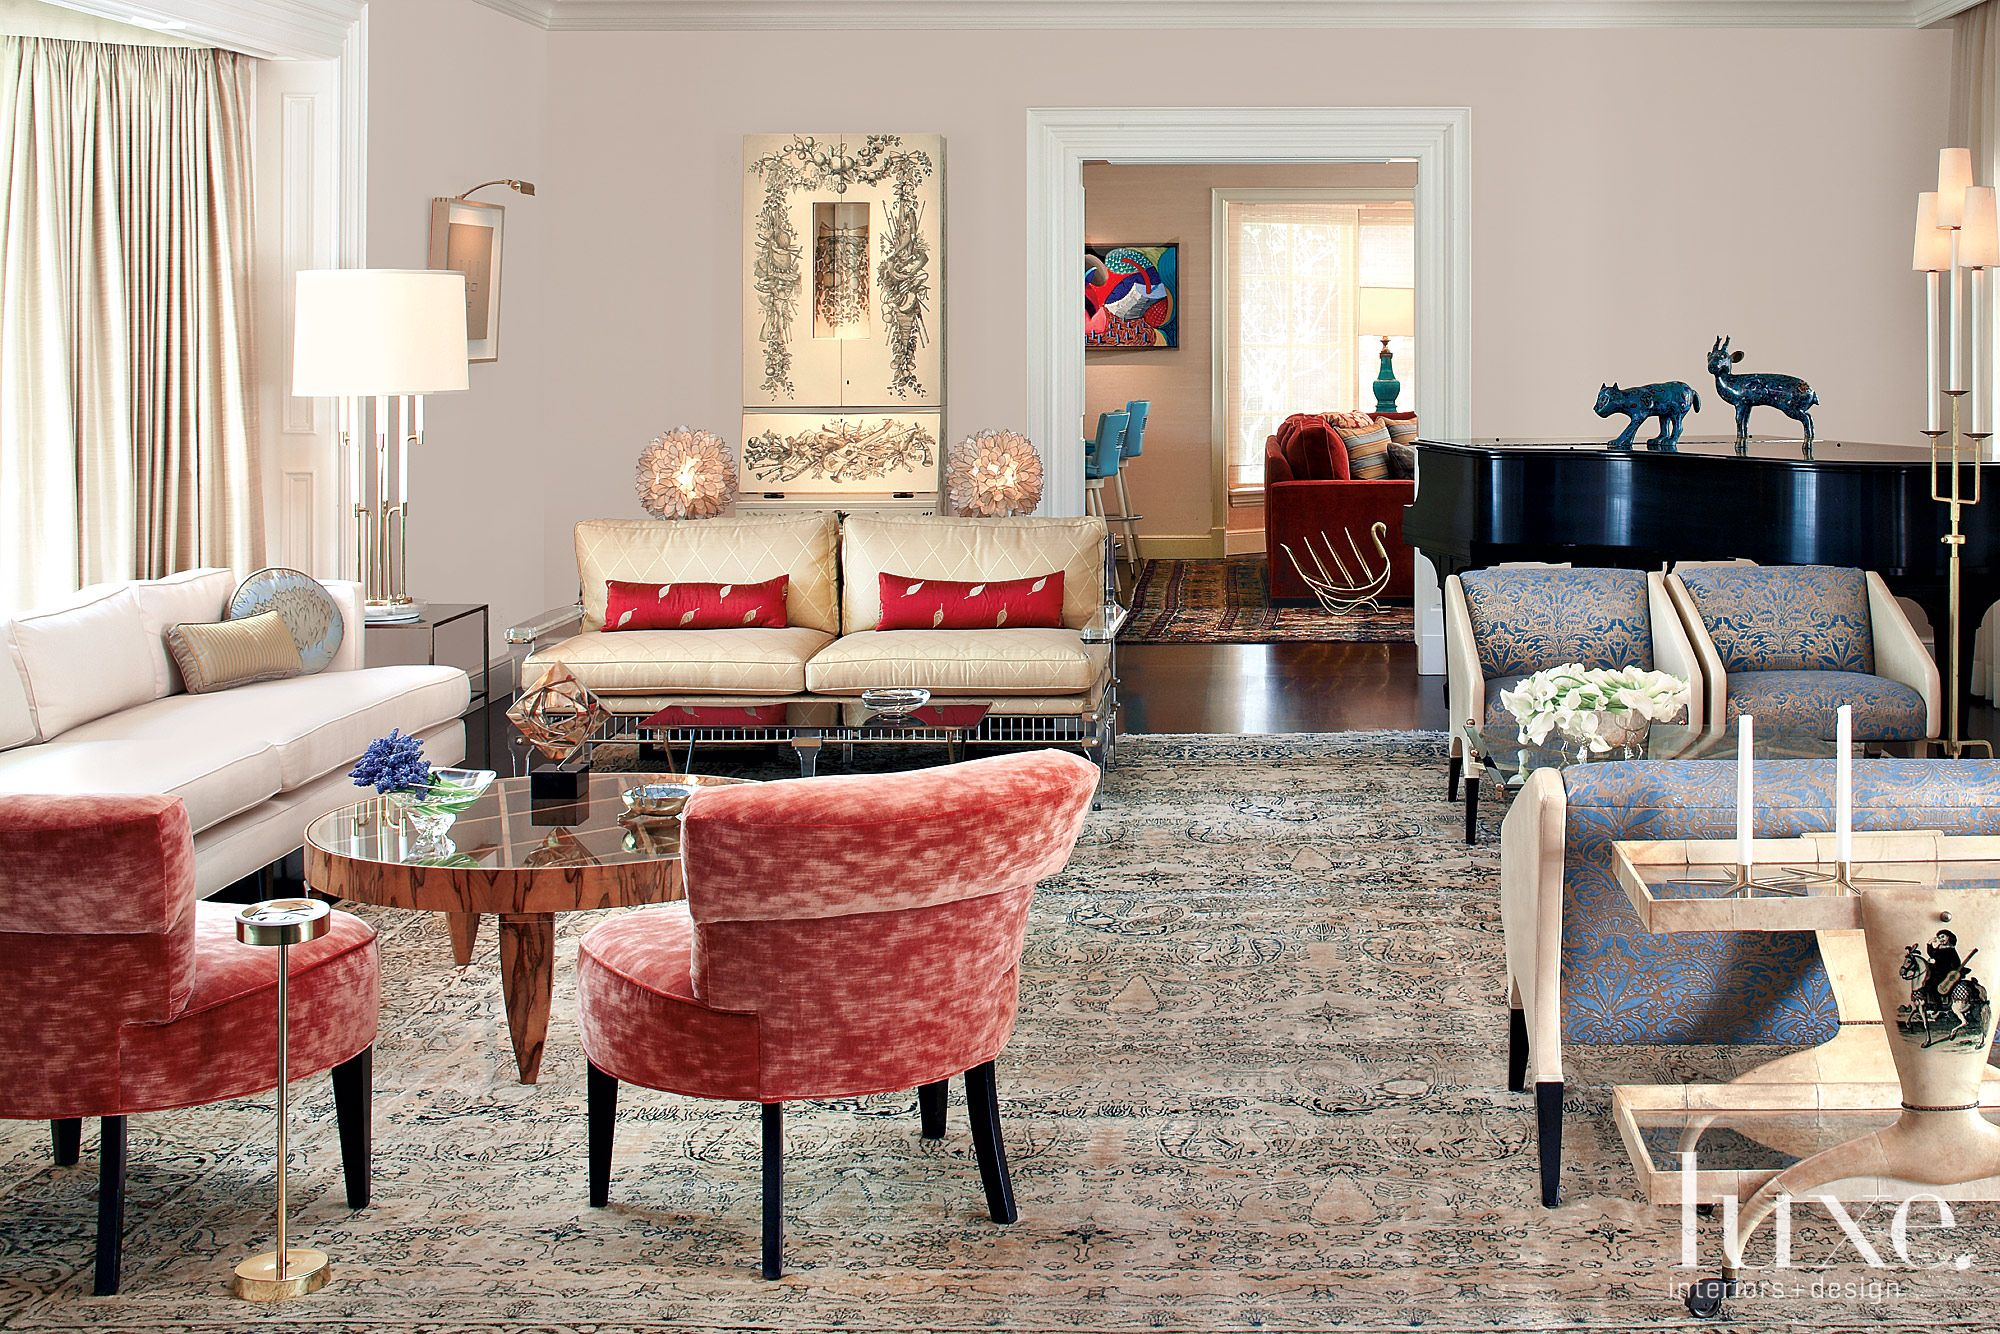 Eclectic White Living Room with Red and Blue Accents